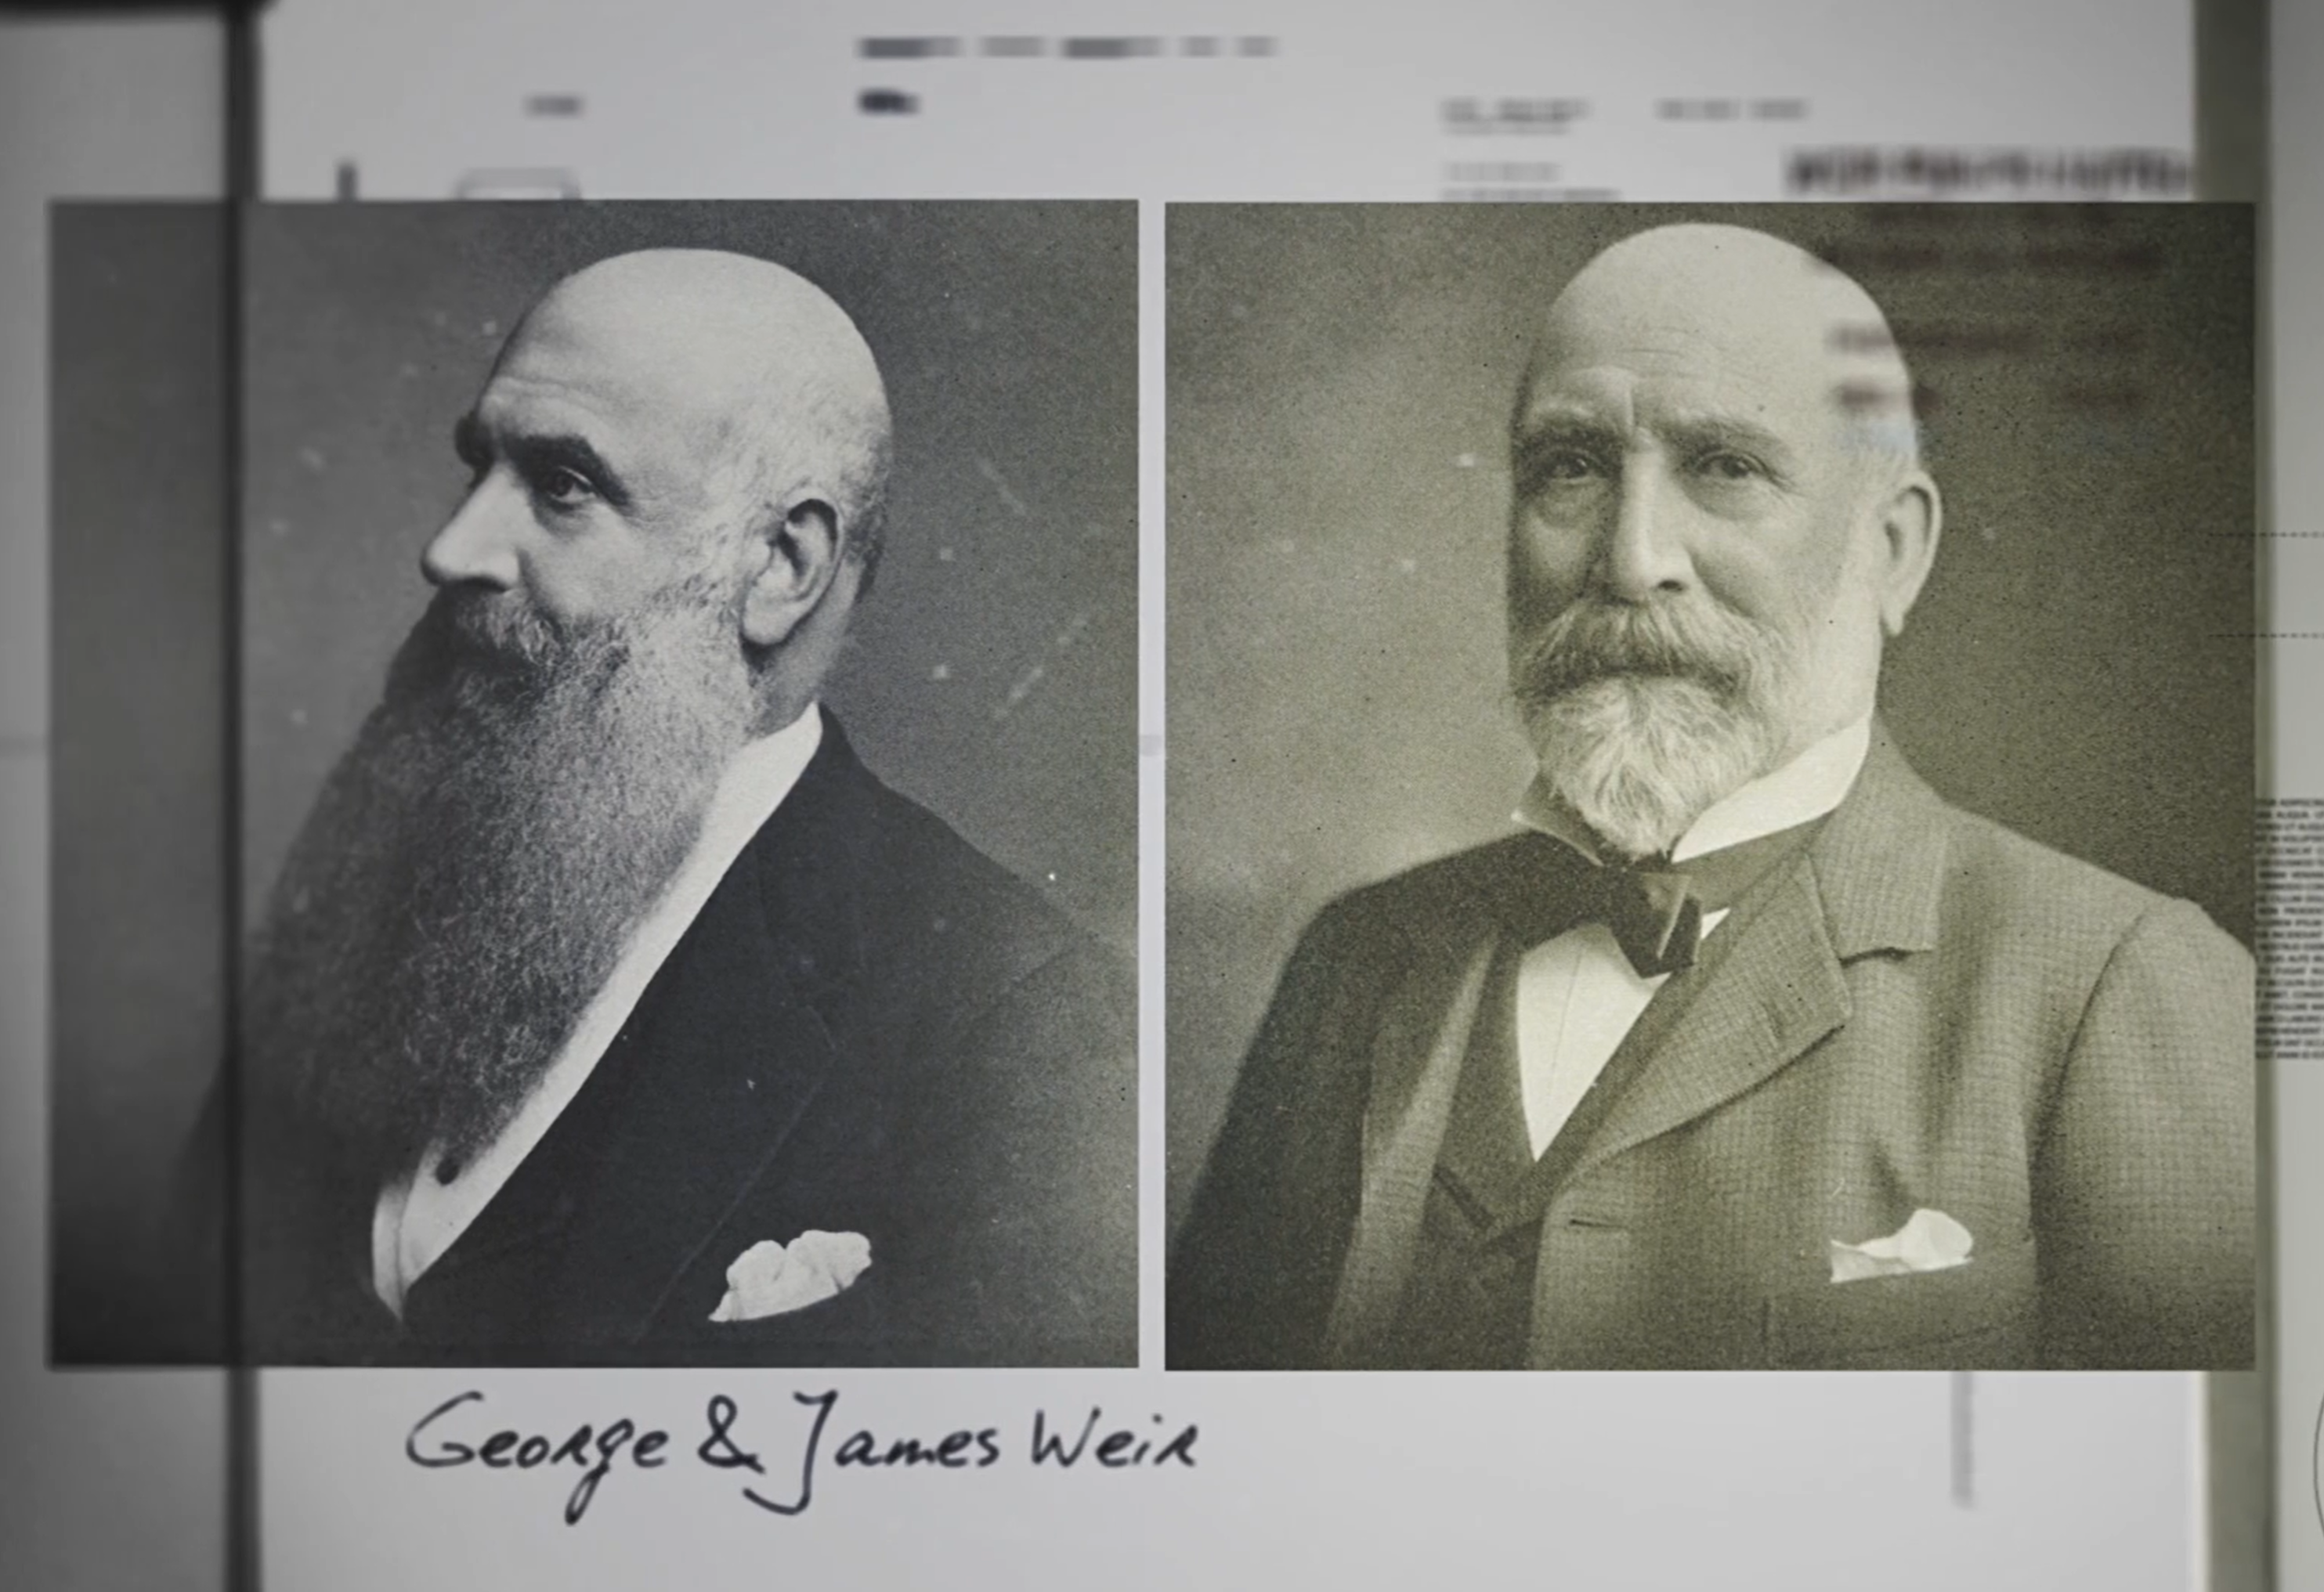 George and James Weir